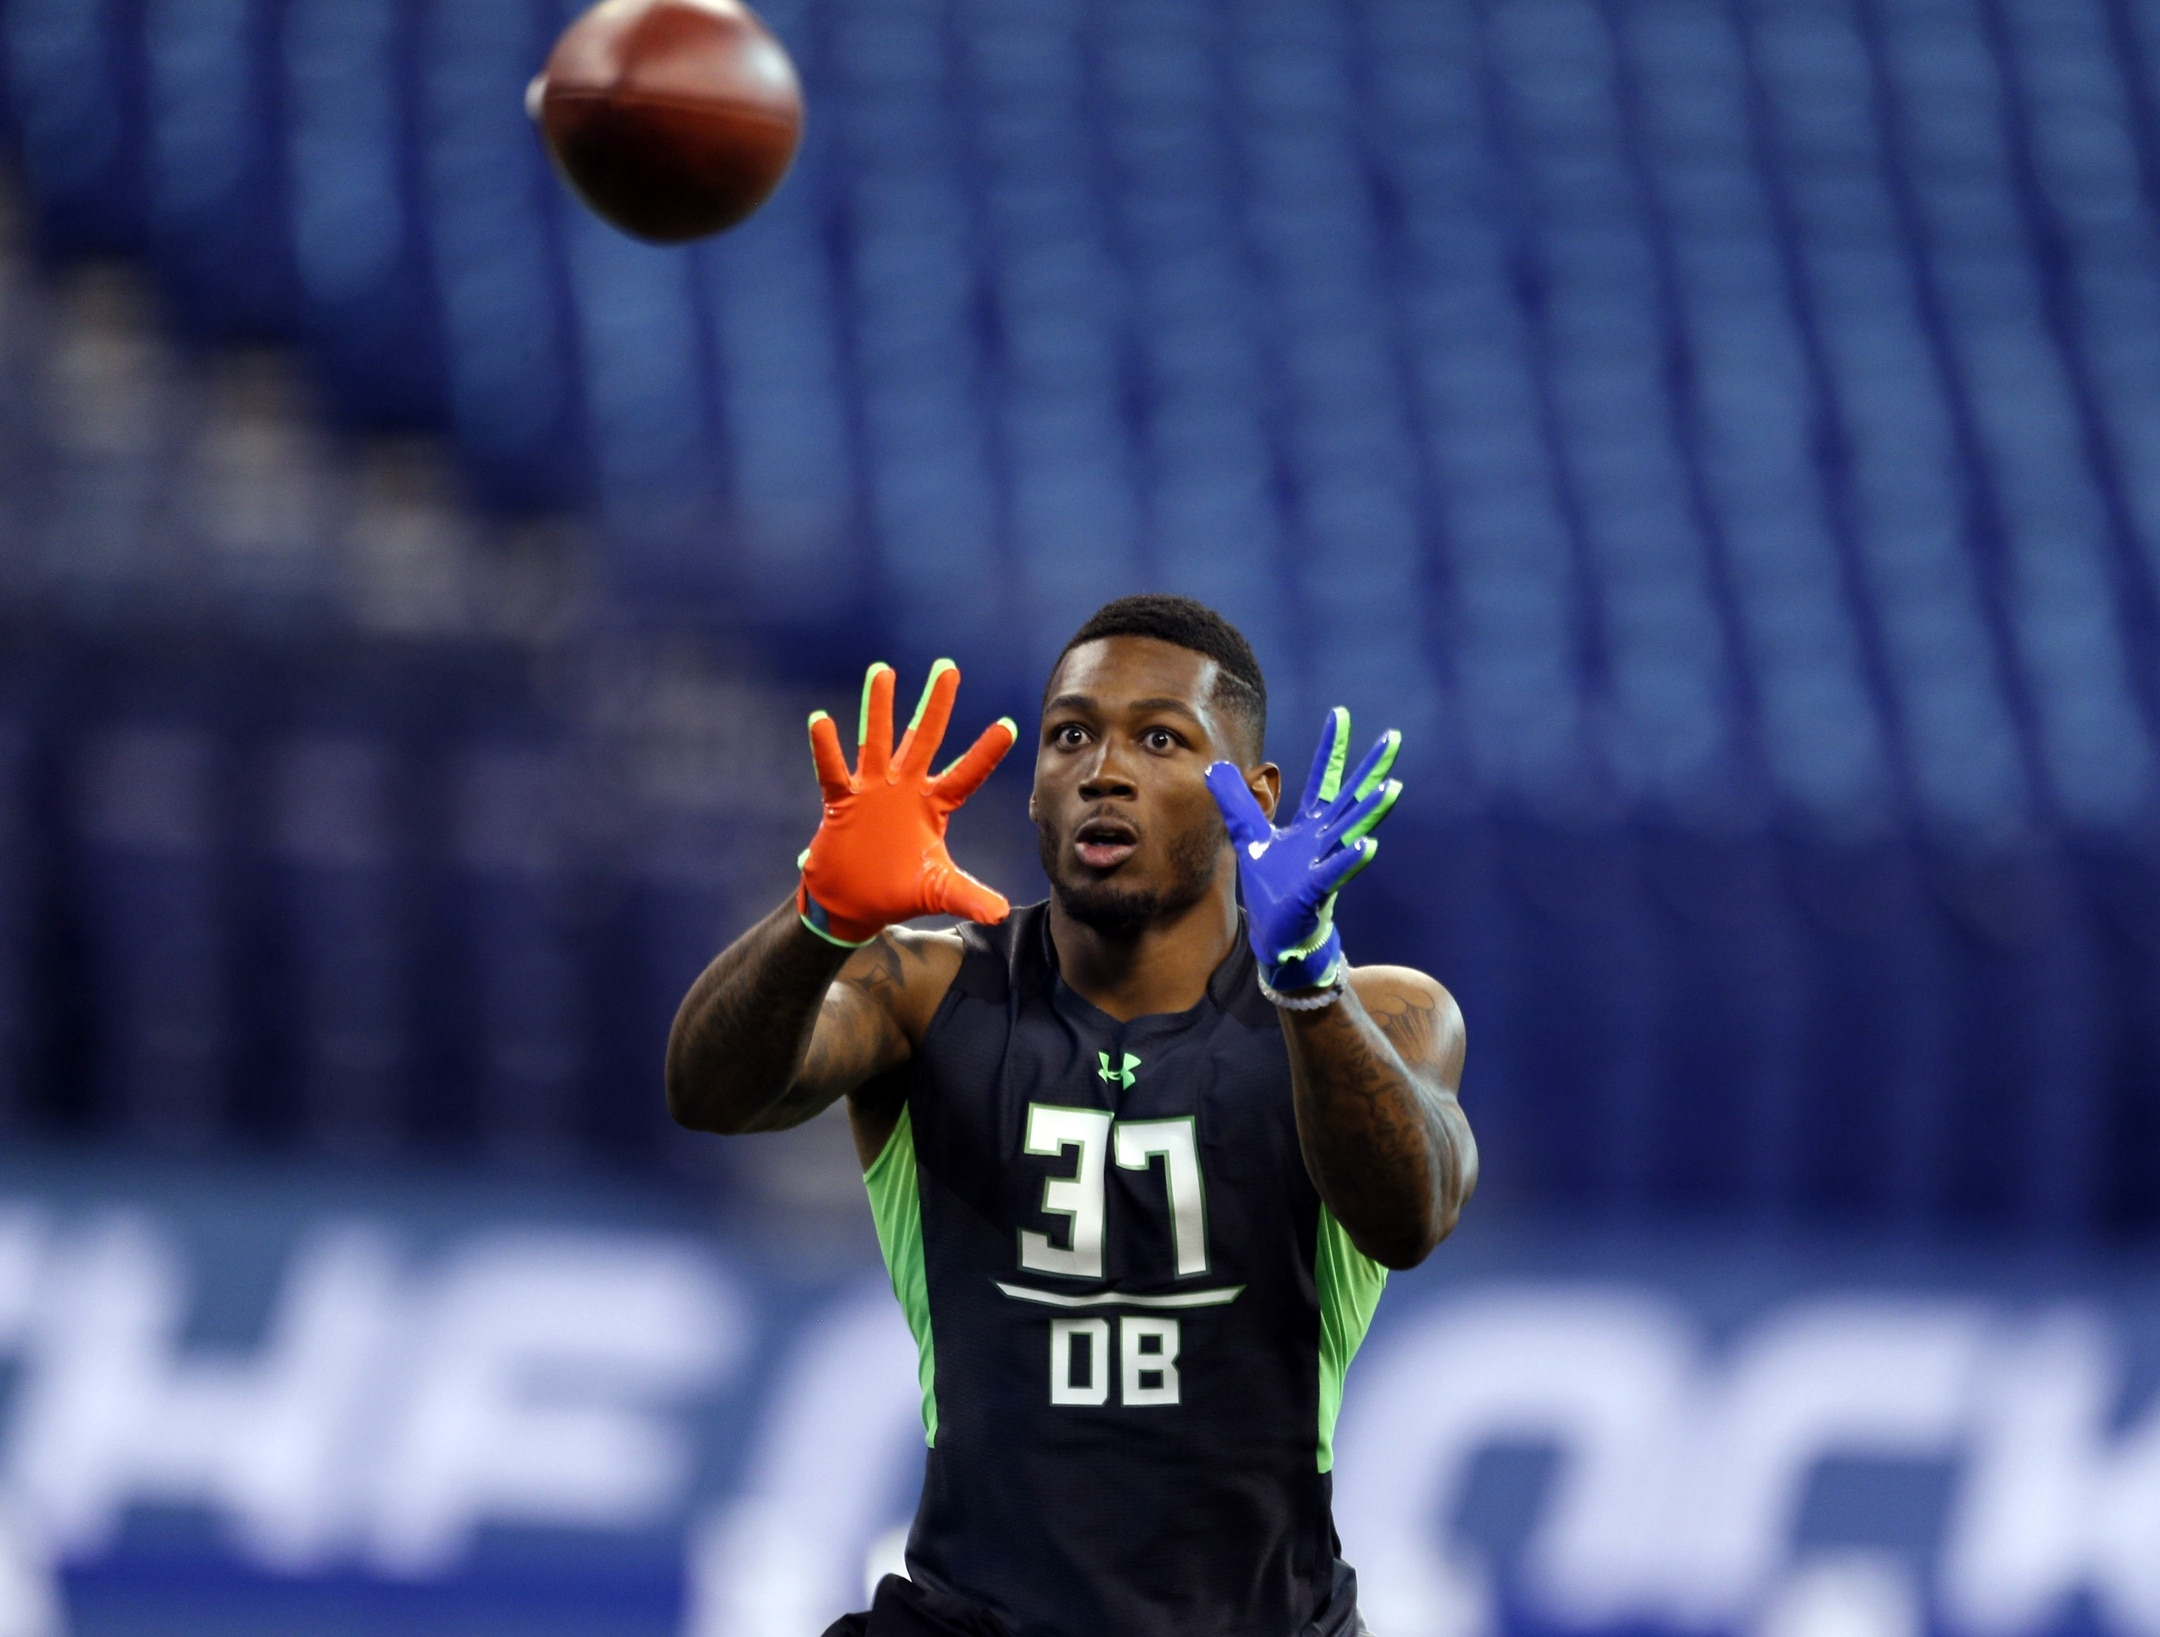 51d579d4156 Feb 29, 2016; Indianapolis, IN, USA; Louisiana State Tigers defensive back Jalen  Mills goes through a workout drill during the 2016 NFL Scouting Combine at  ...